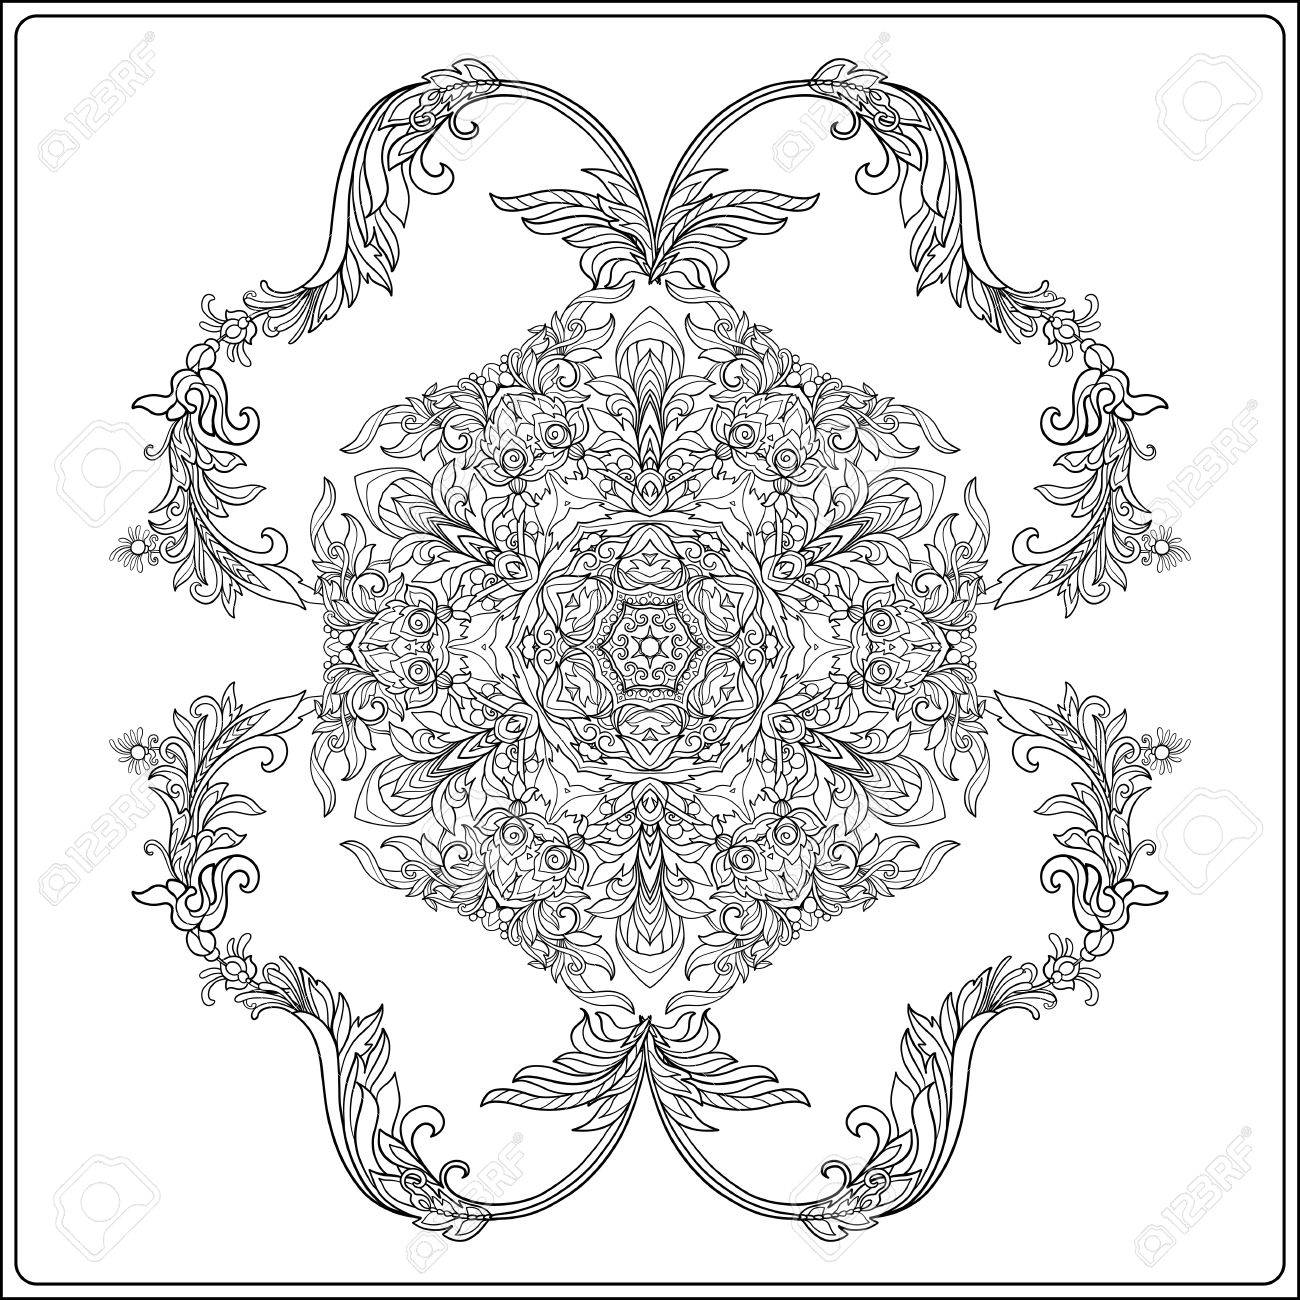 The Best Free Symmetry Drawing Images Download From 133